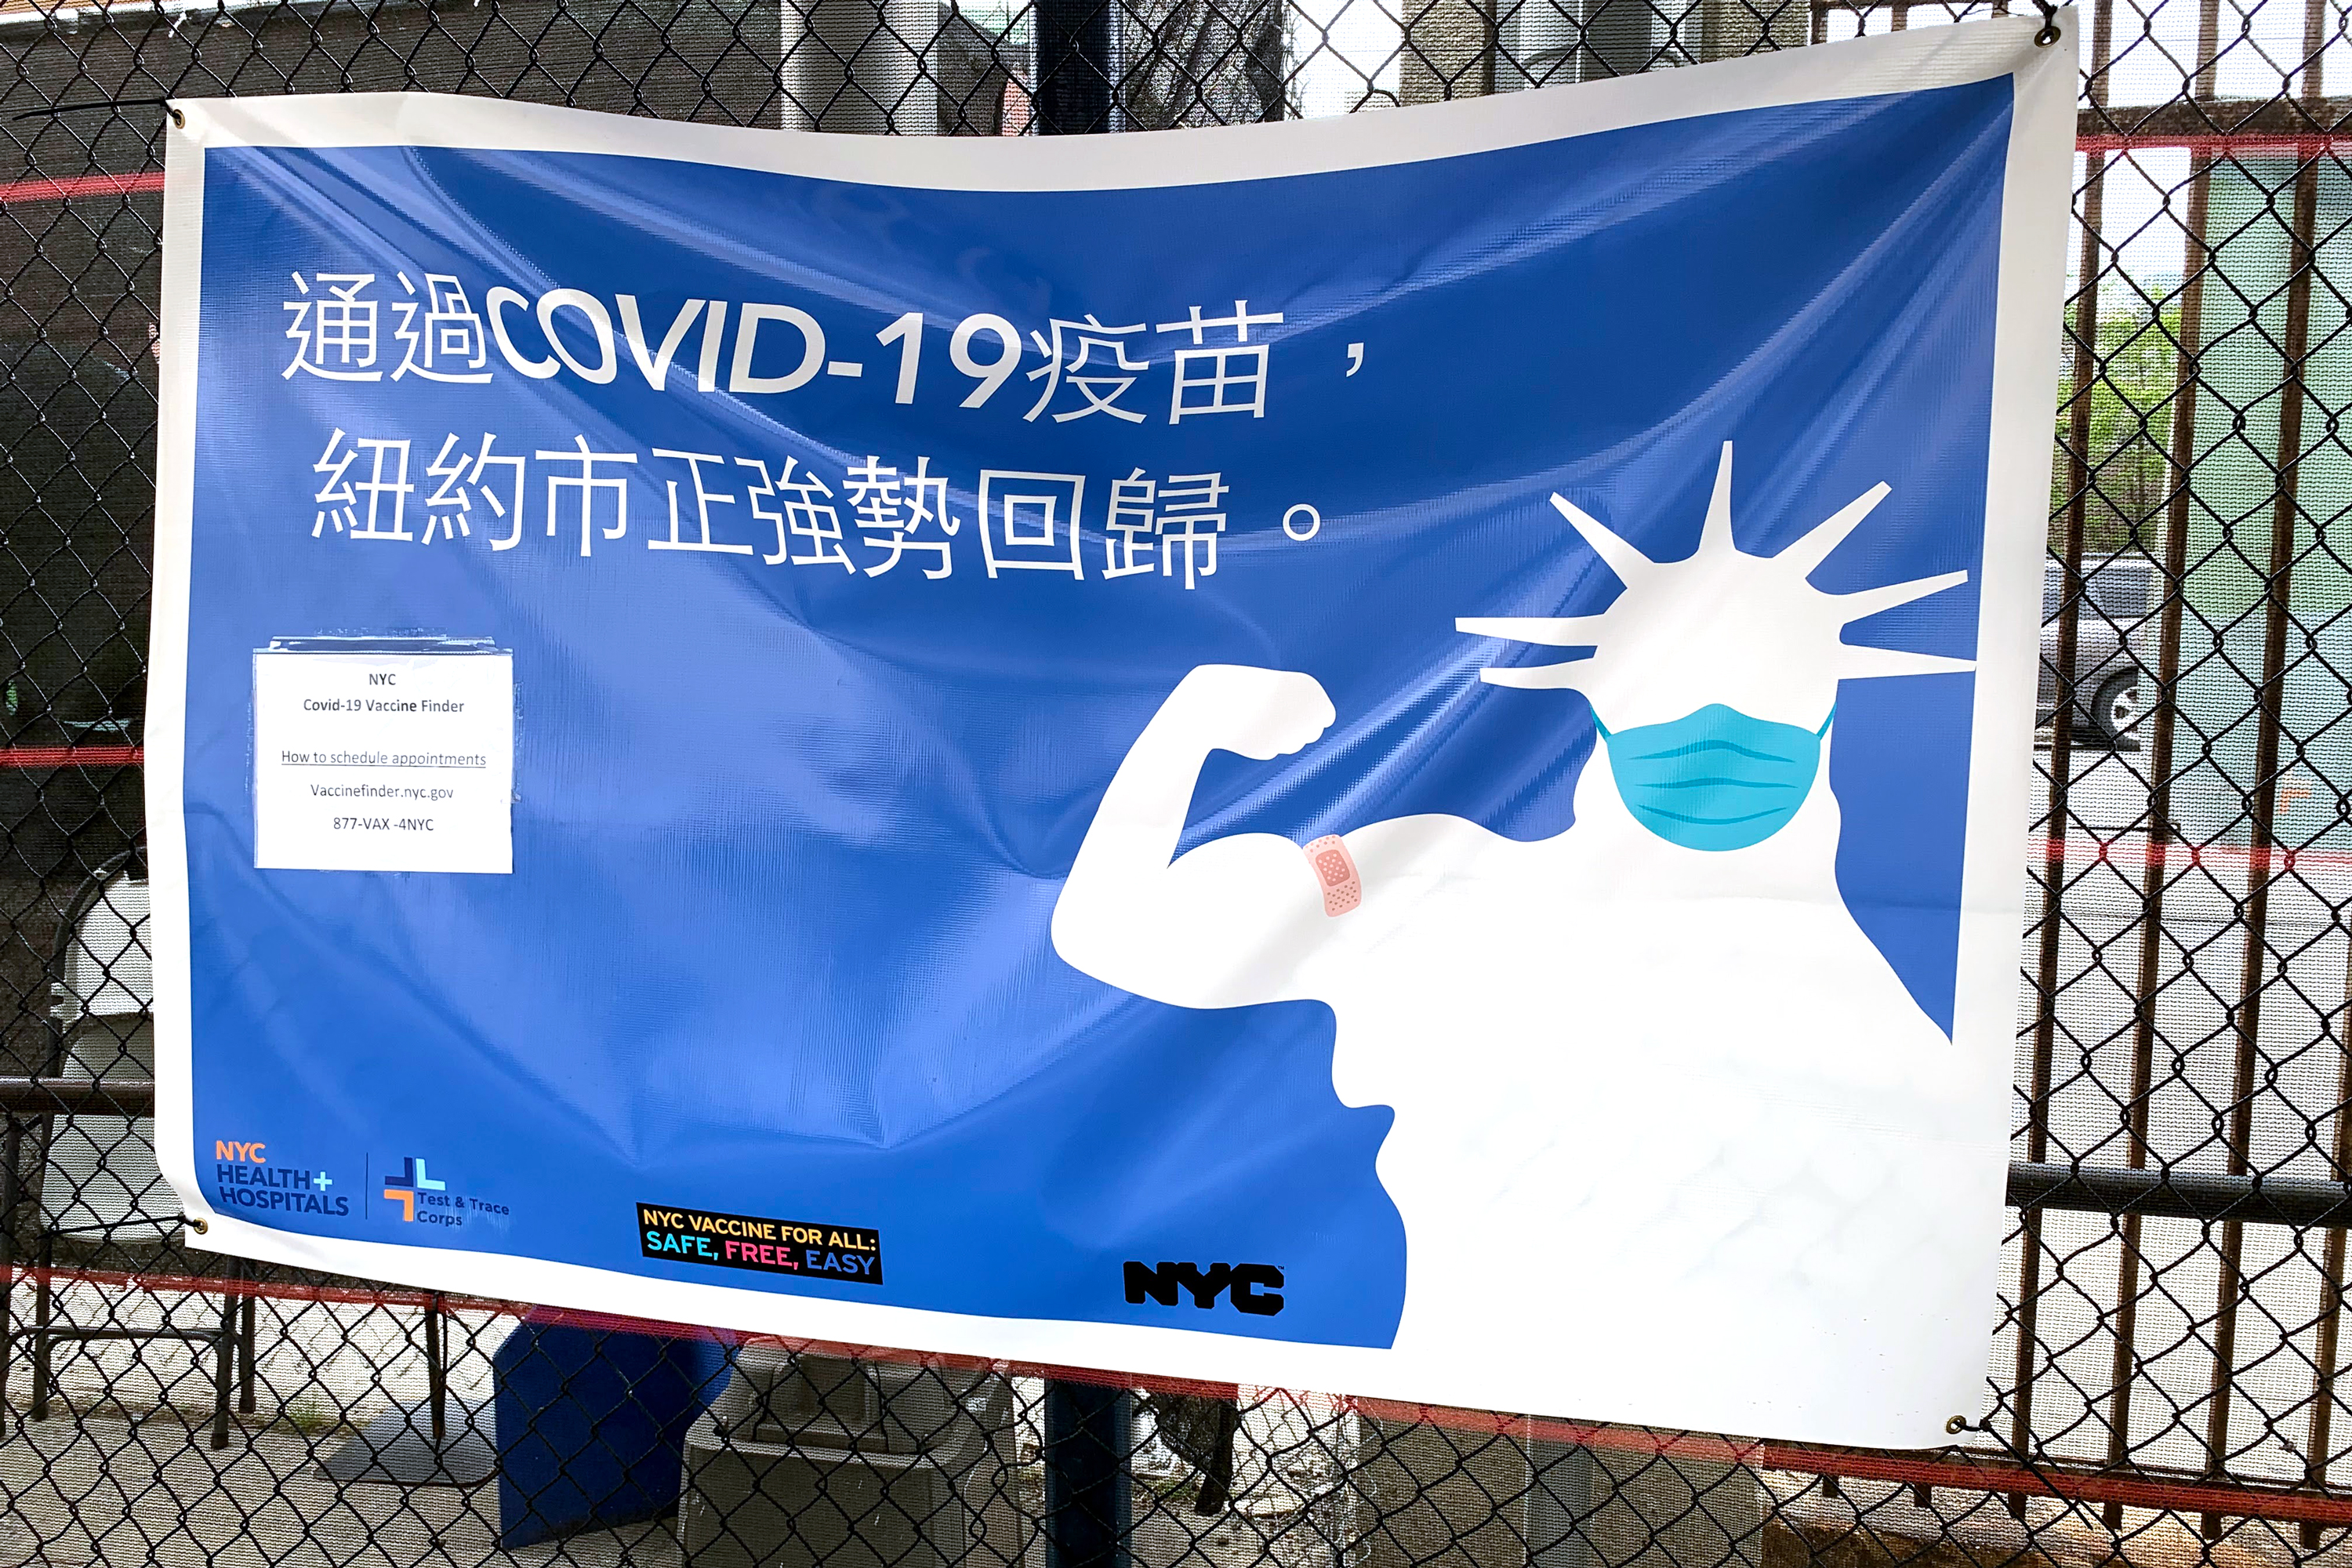 Information in different languages outside the Brooklyn Army Terminal vaccine site, April 29, 2021.